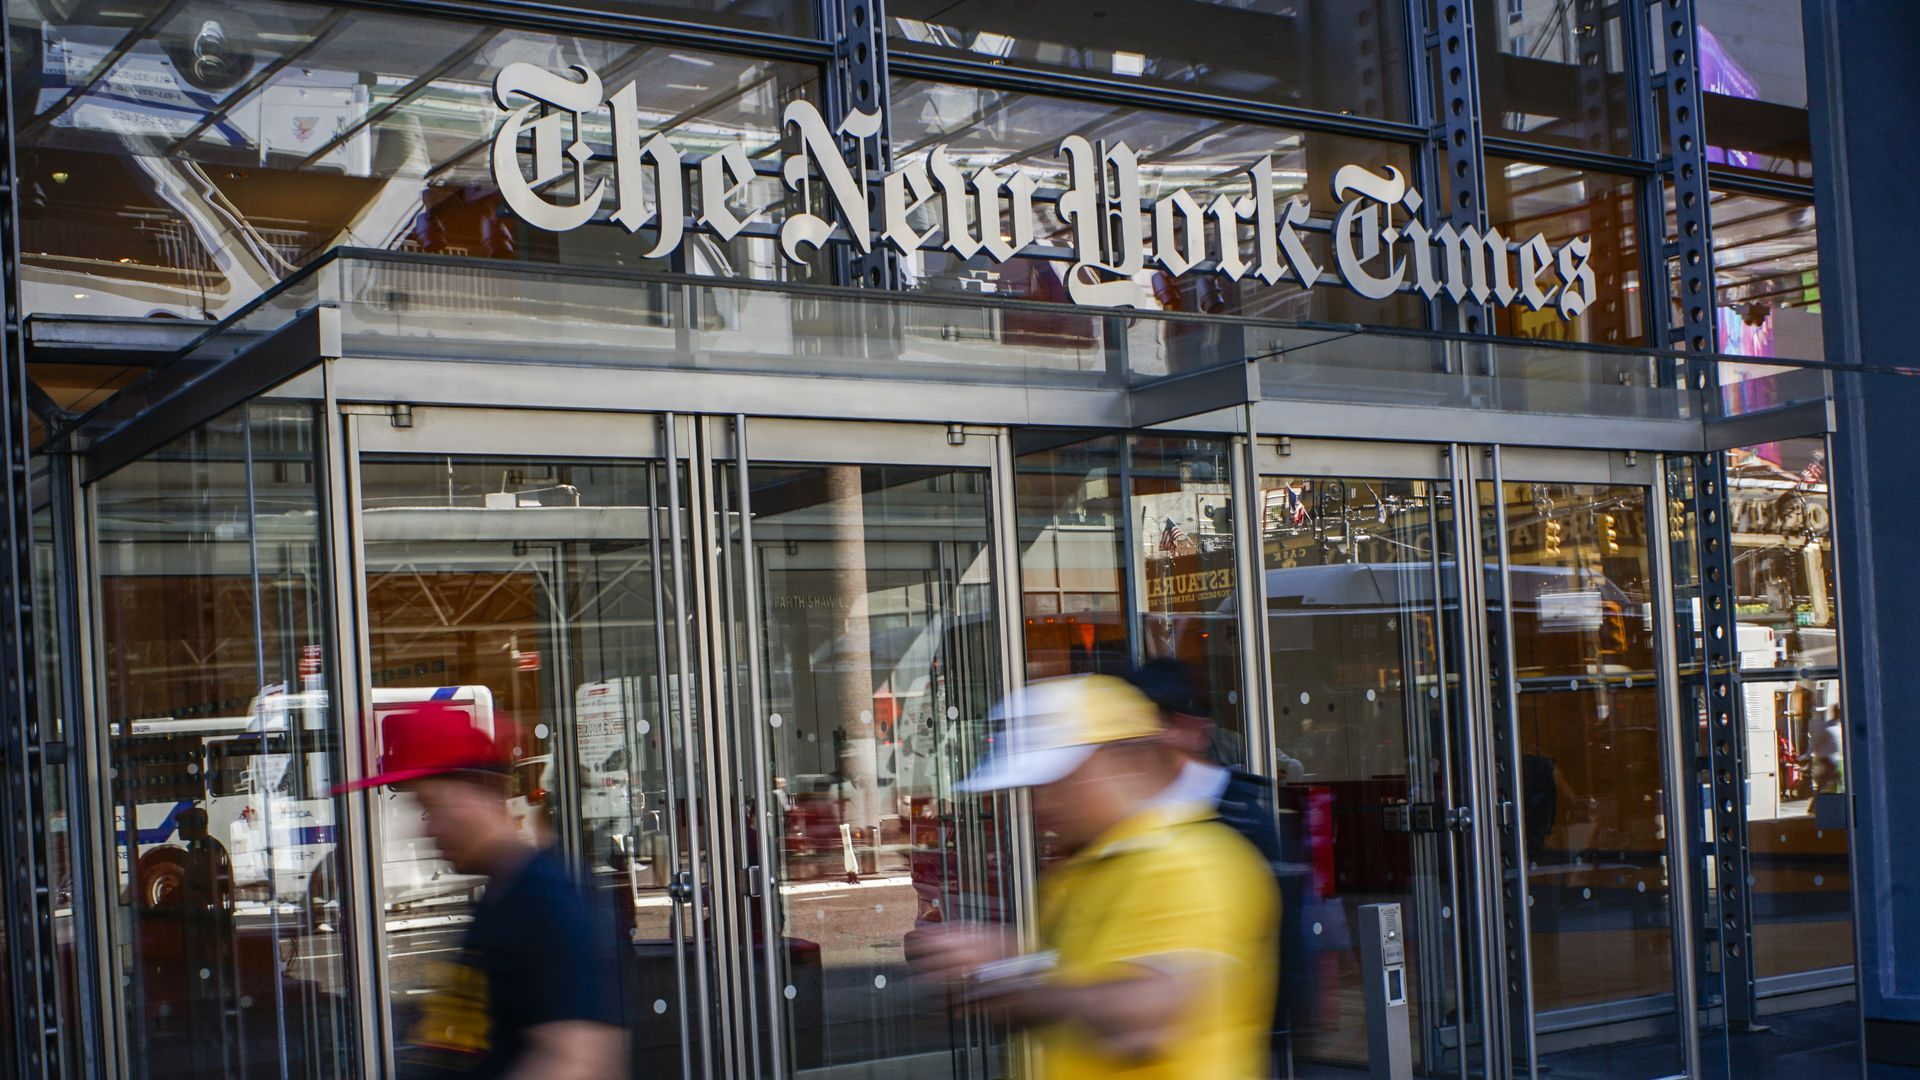 New York Times phasing out all 3rd-party advertising data